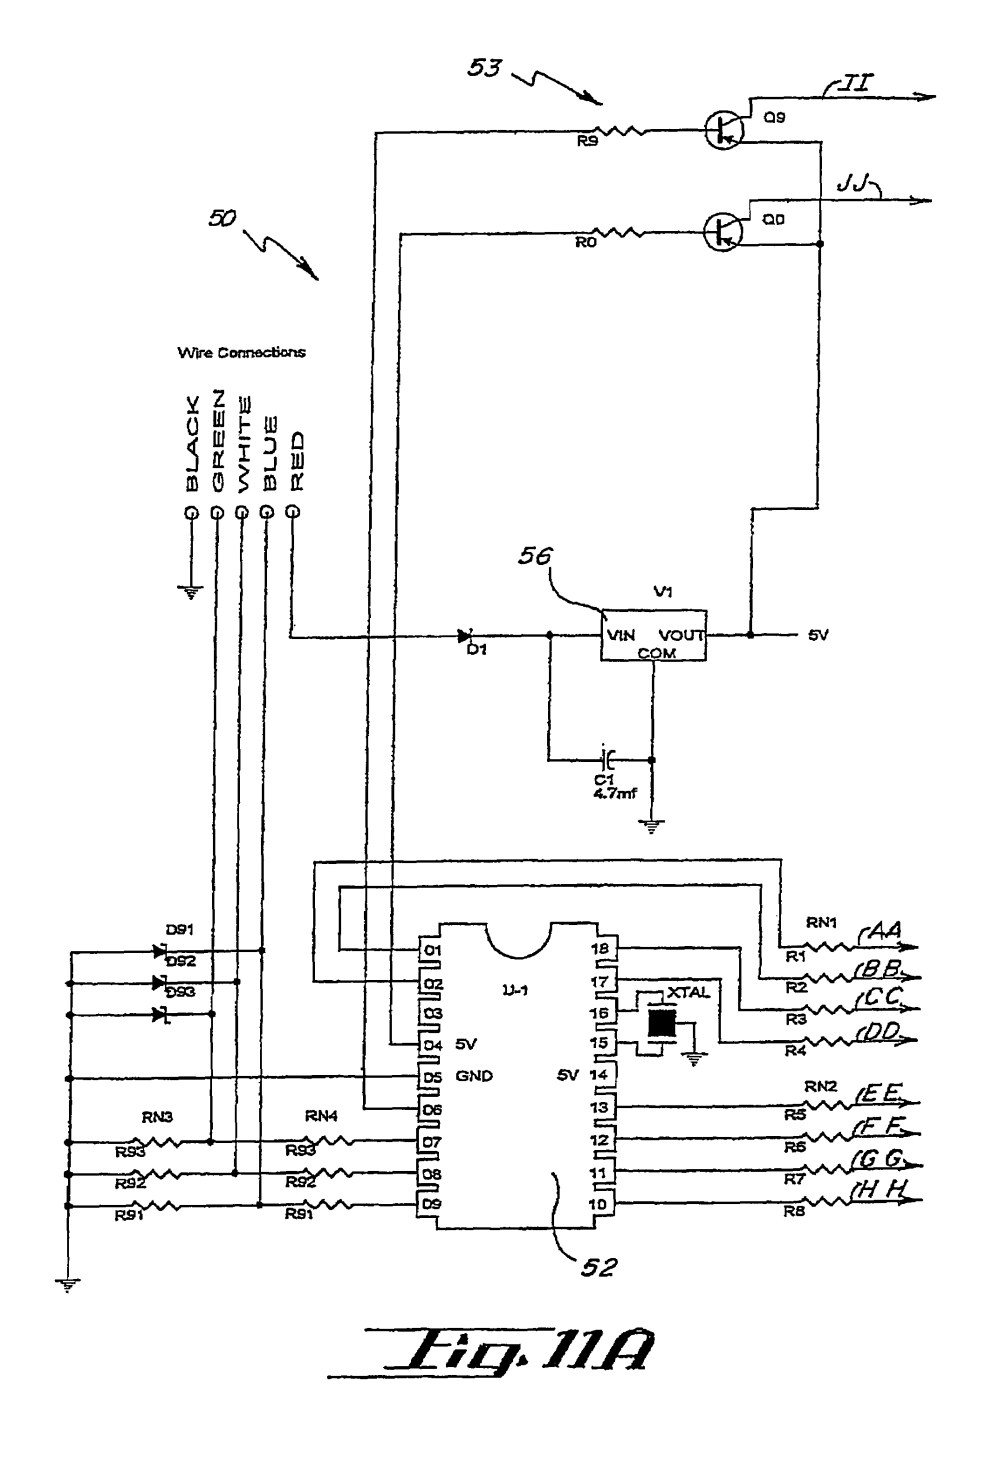 medium resolution of whelen ssf5150d wiring diagram wiring diagram img whelen ssf5150d wiring diagram